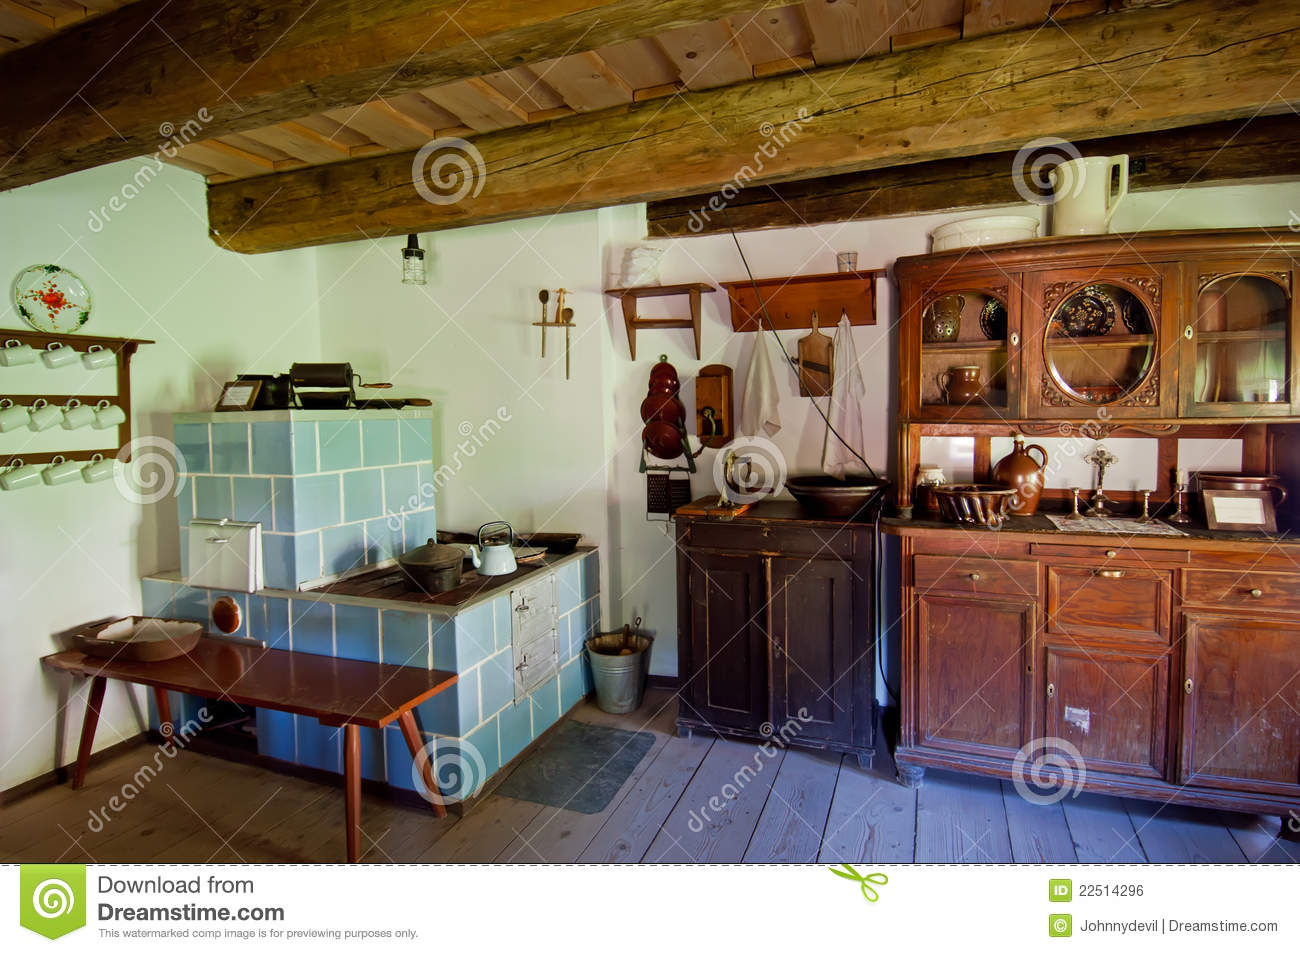 old wooden house interior royalty free stock image image 22514296. Black Bedroom Furniture Sets. Home Design Ideas